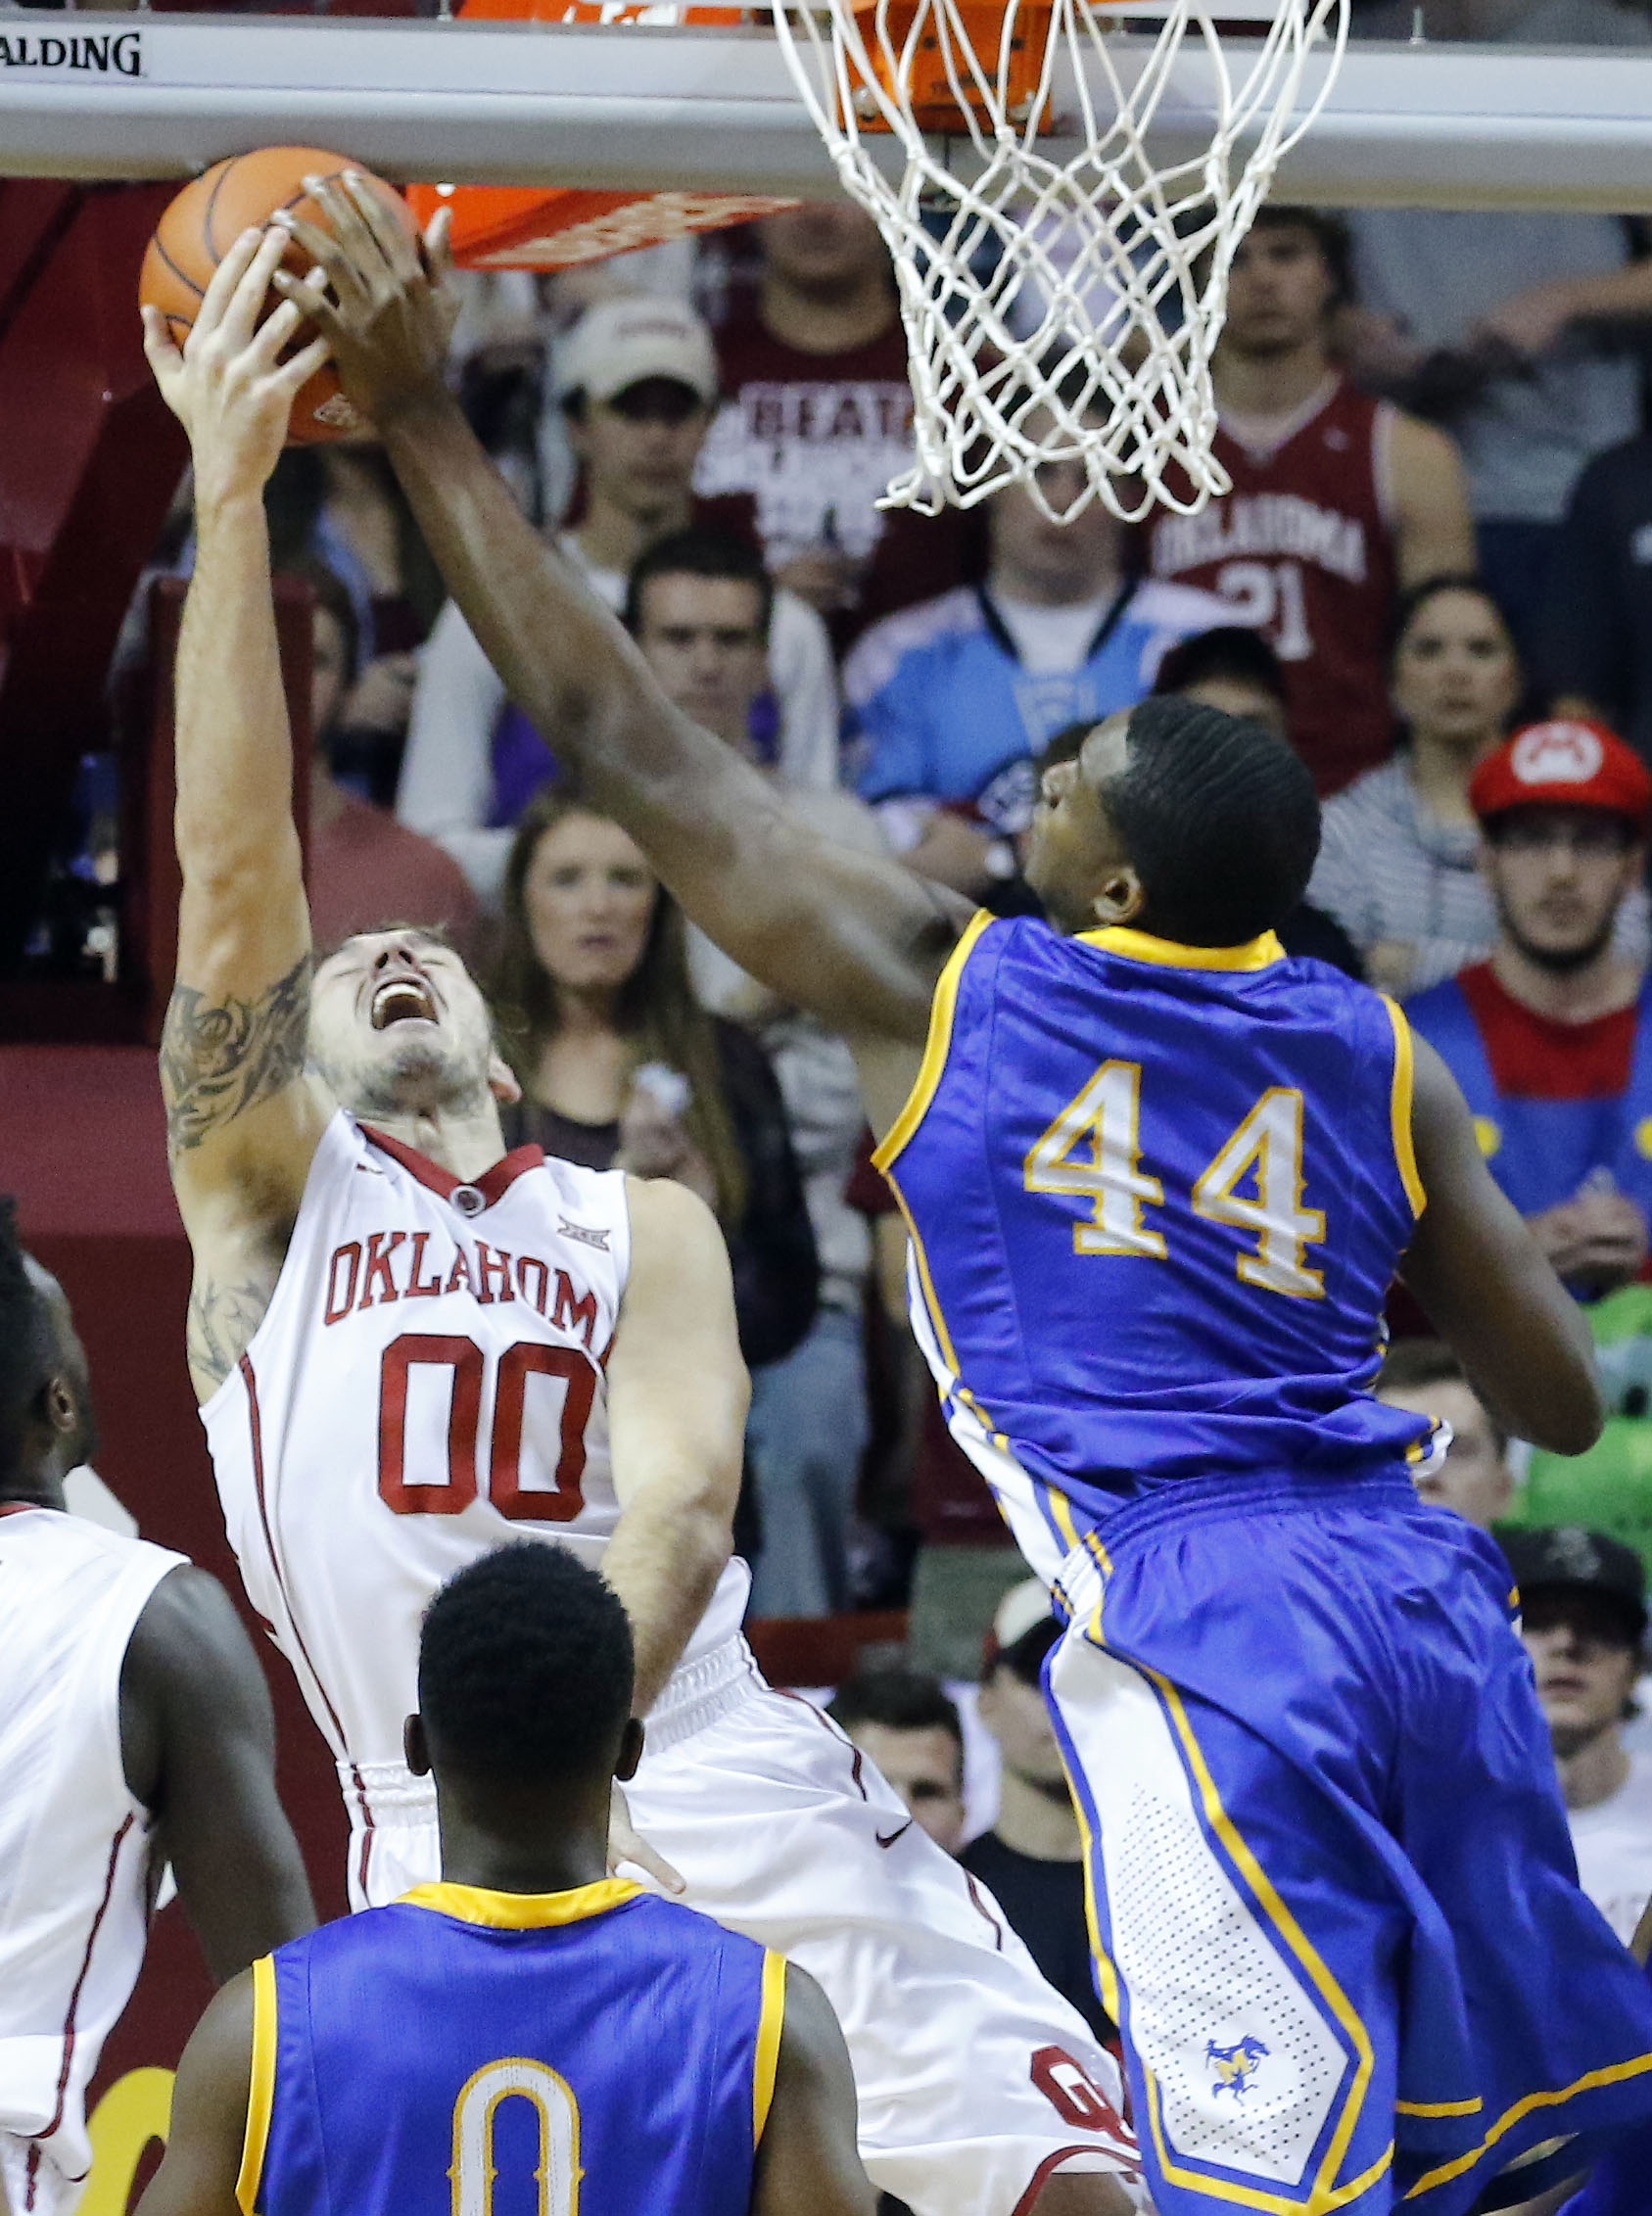 Oklahoma forward Ryan Spangler (00) goes up for a basket as McNeese State forward Austin Lewis (44) defends during the first half of an NCAA mens basketball game in Norman, Okla., Friday, Nov. 20, 2015. (AP Photo/Alonzo Adams)